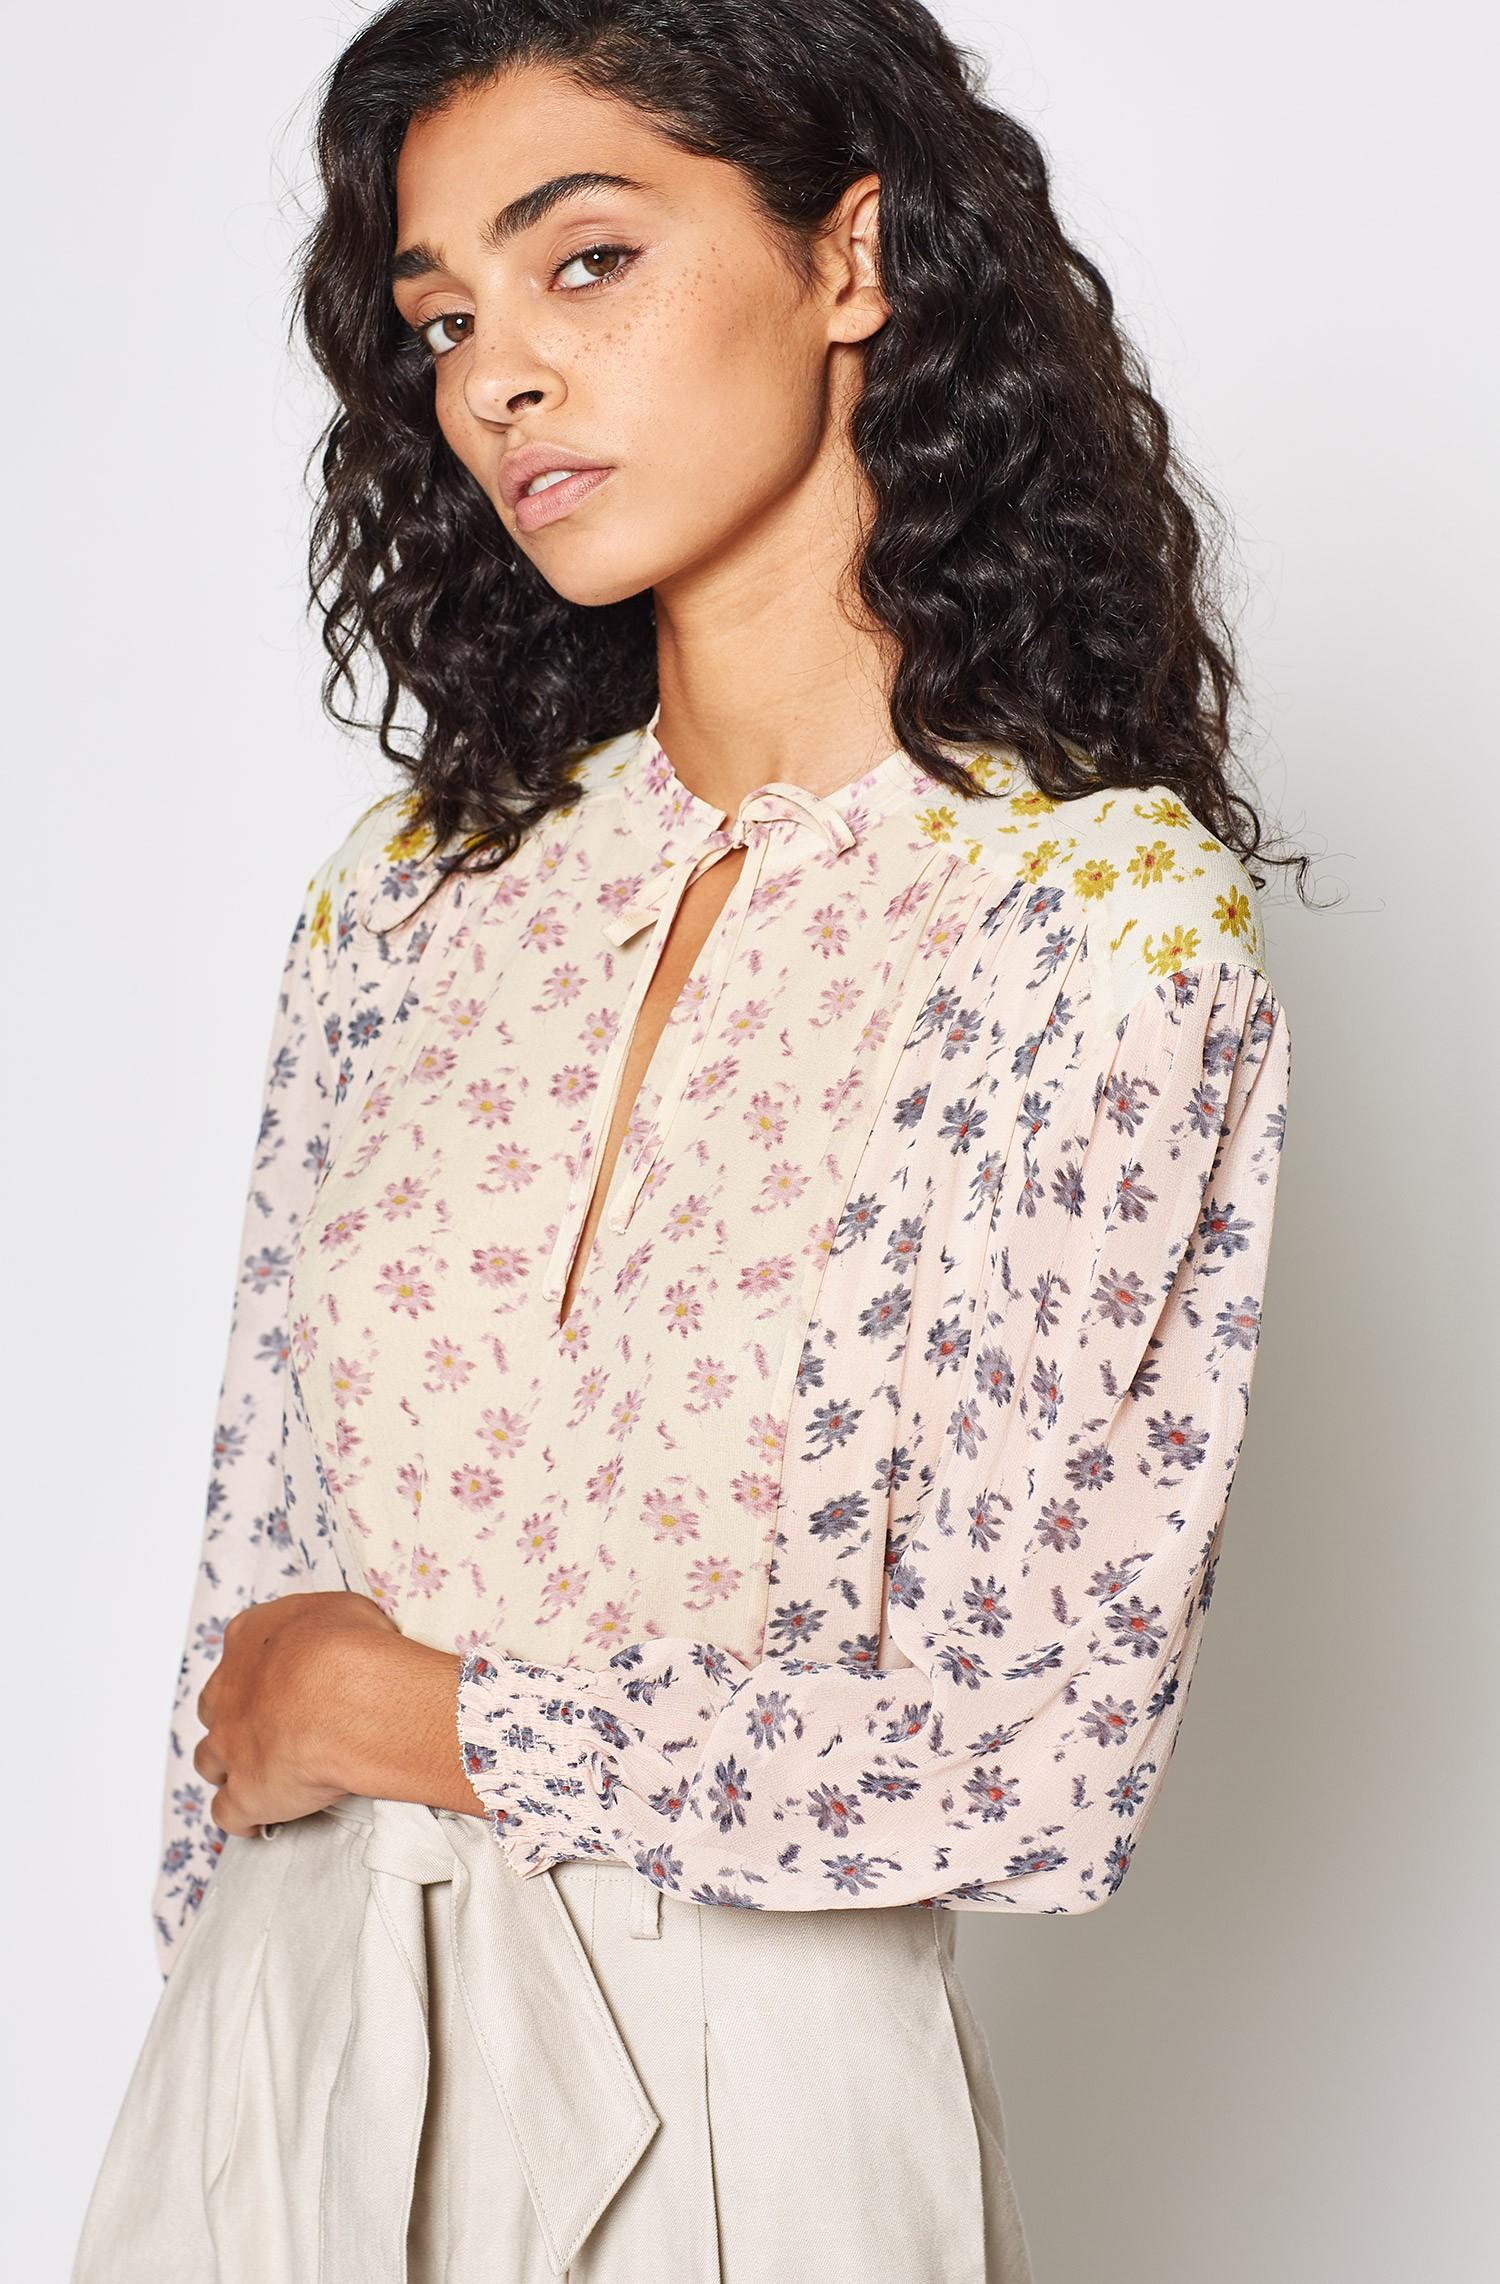 670f48f3d78c3 Joie Tyla Silk Floral Top - Lyst